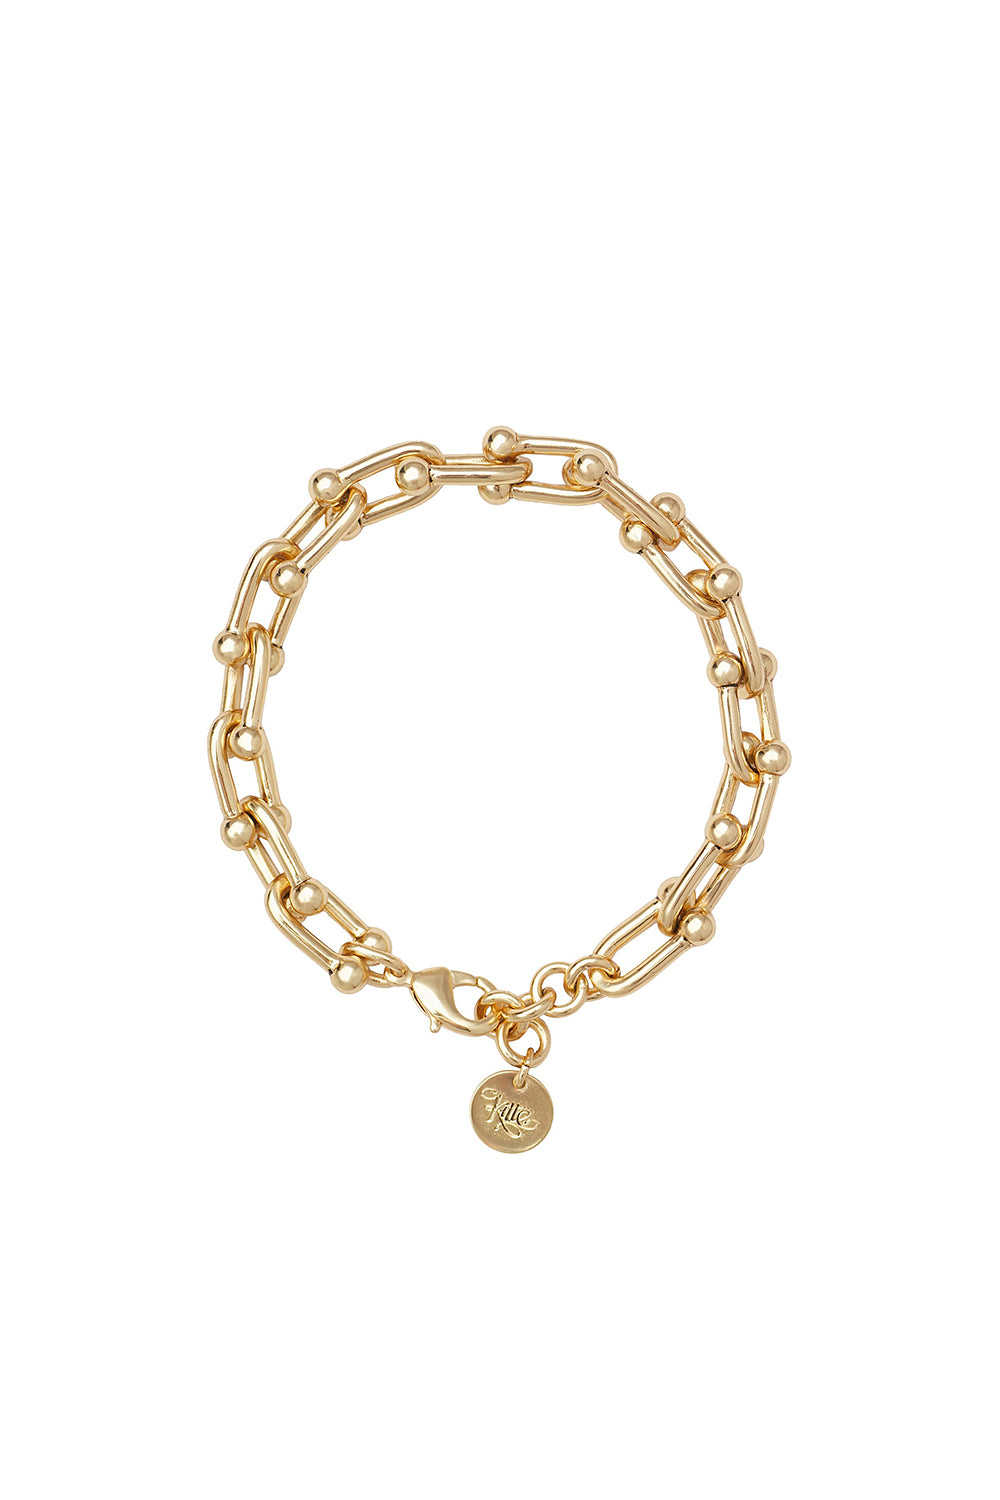 Kitte / Bond Bracelet / Gold